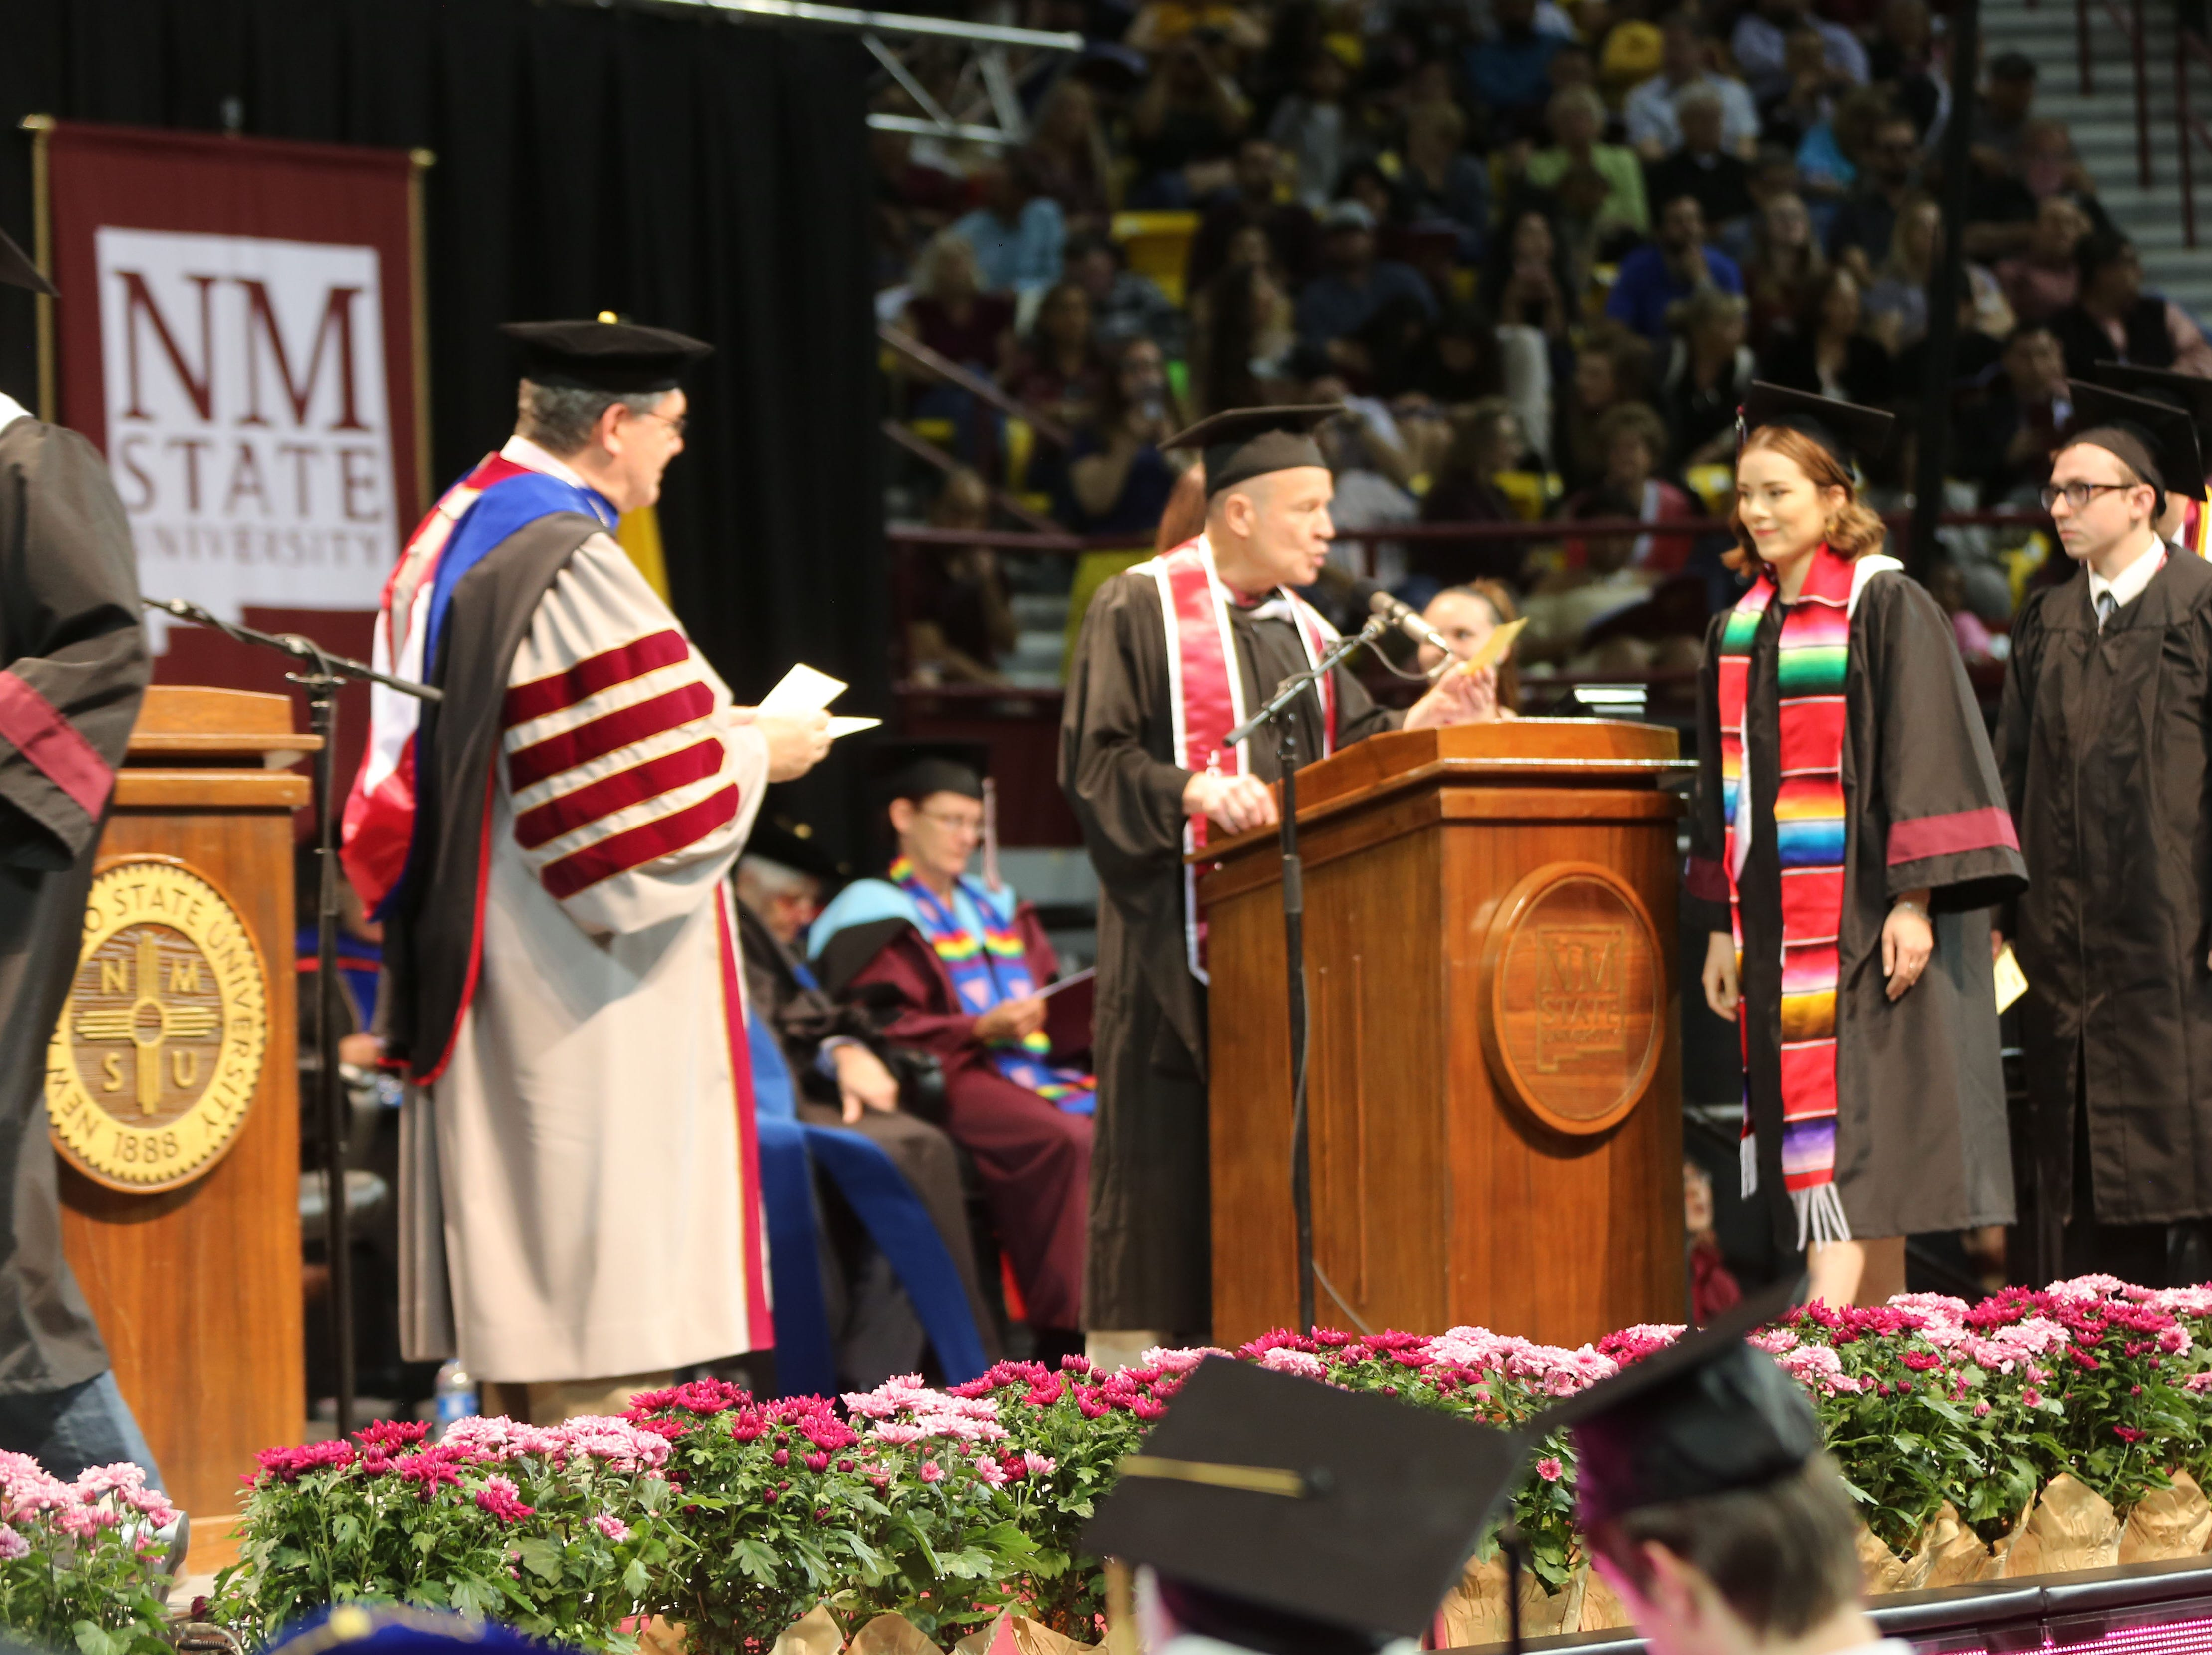 This year, New Mexico State University, awarded 438 master's degrees. Student's accepted their degrees during two commencement ceremonies, Saturday May 11, 2019.